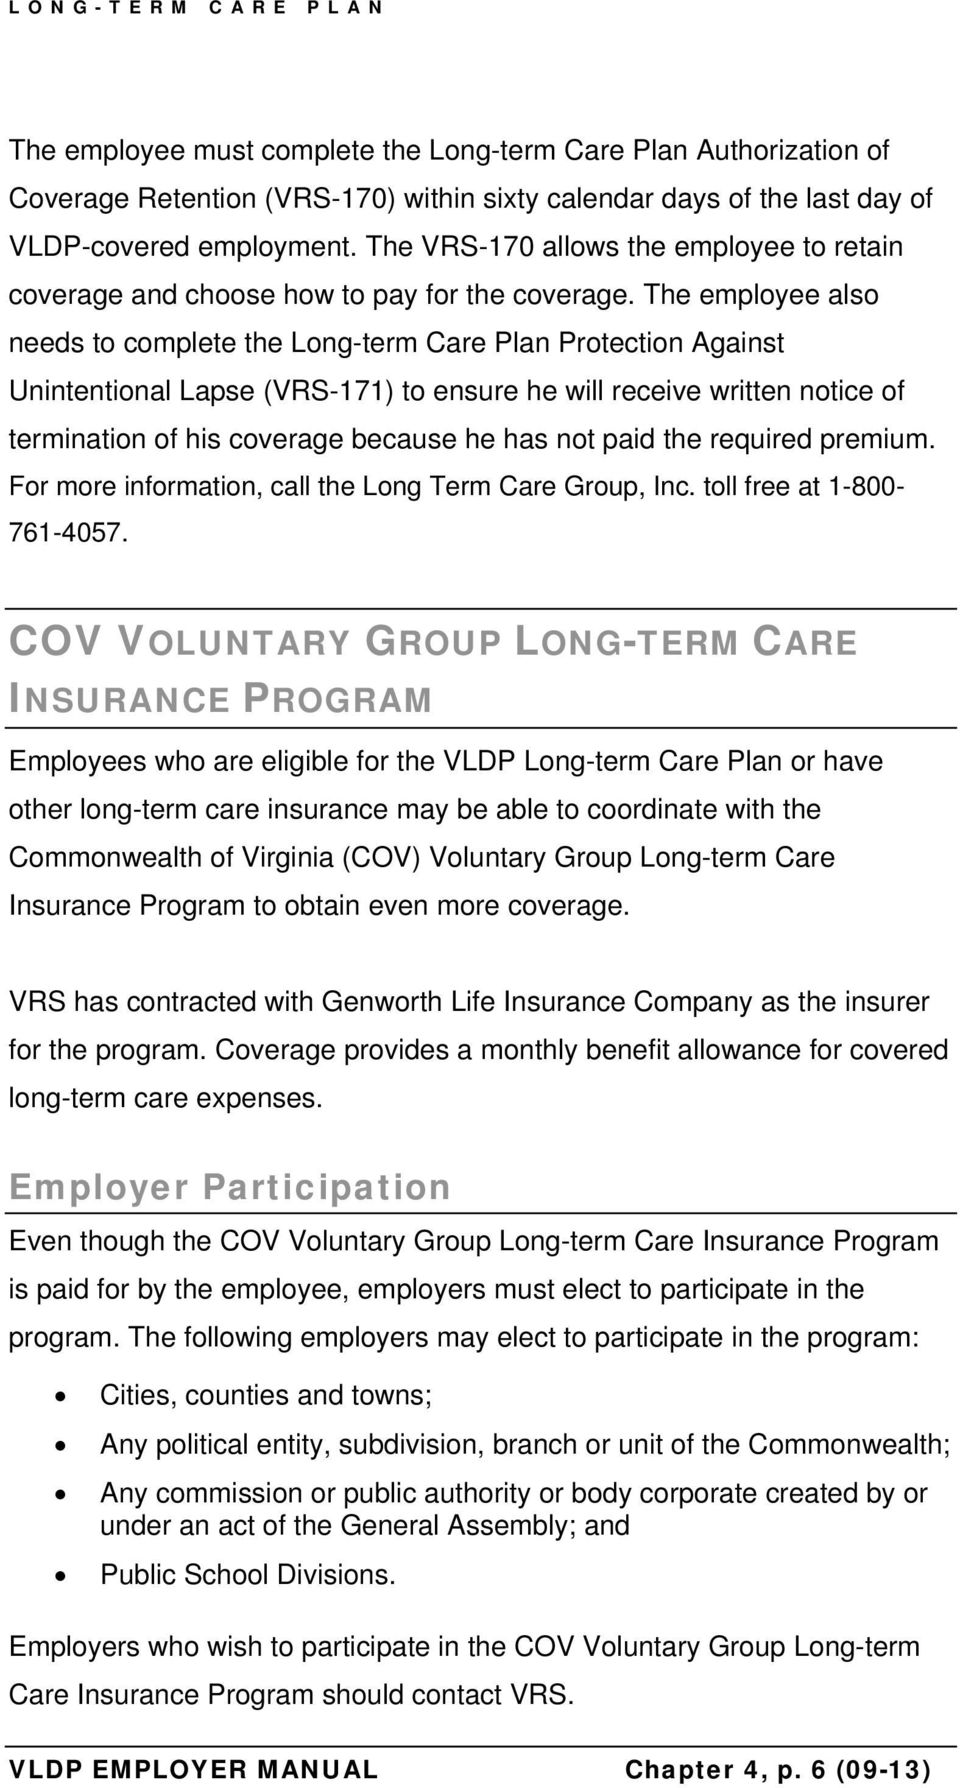 The employee also needs to complete the Long-term Care Plan Protection Against Unintentional Lapse (VRS-171) to ensure he will receive written notice of termination of his coverage because he has not